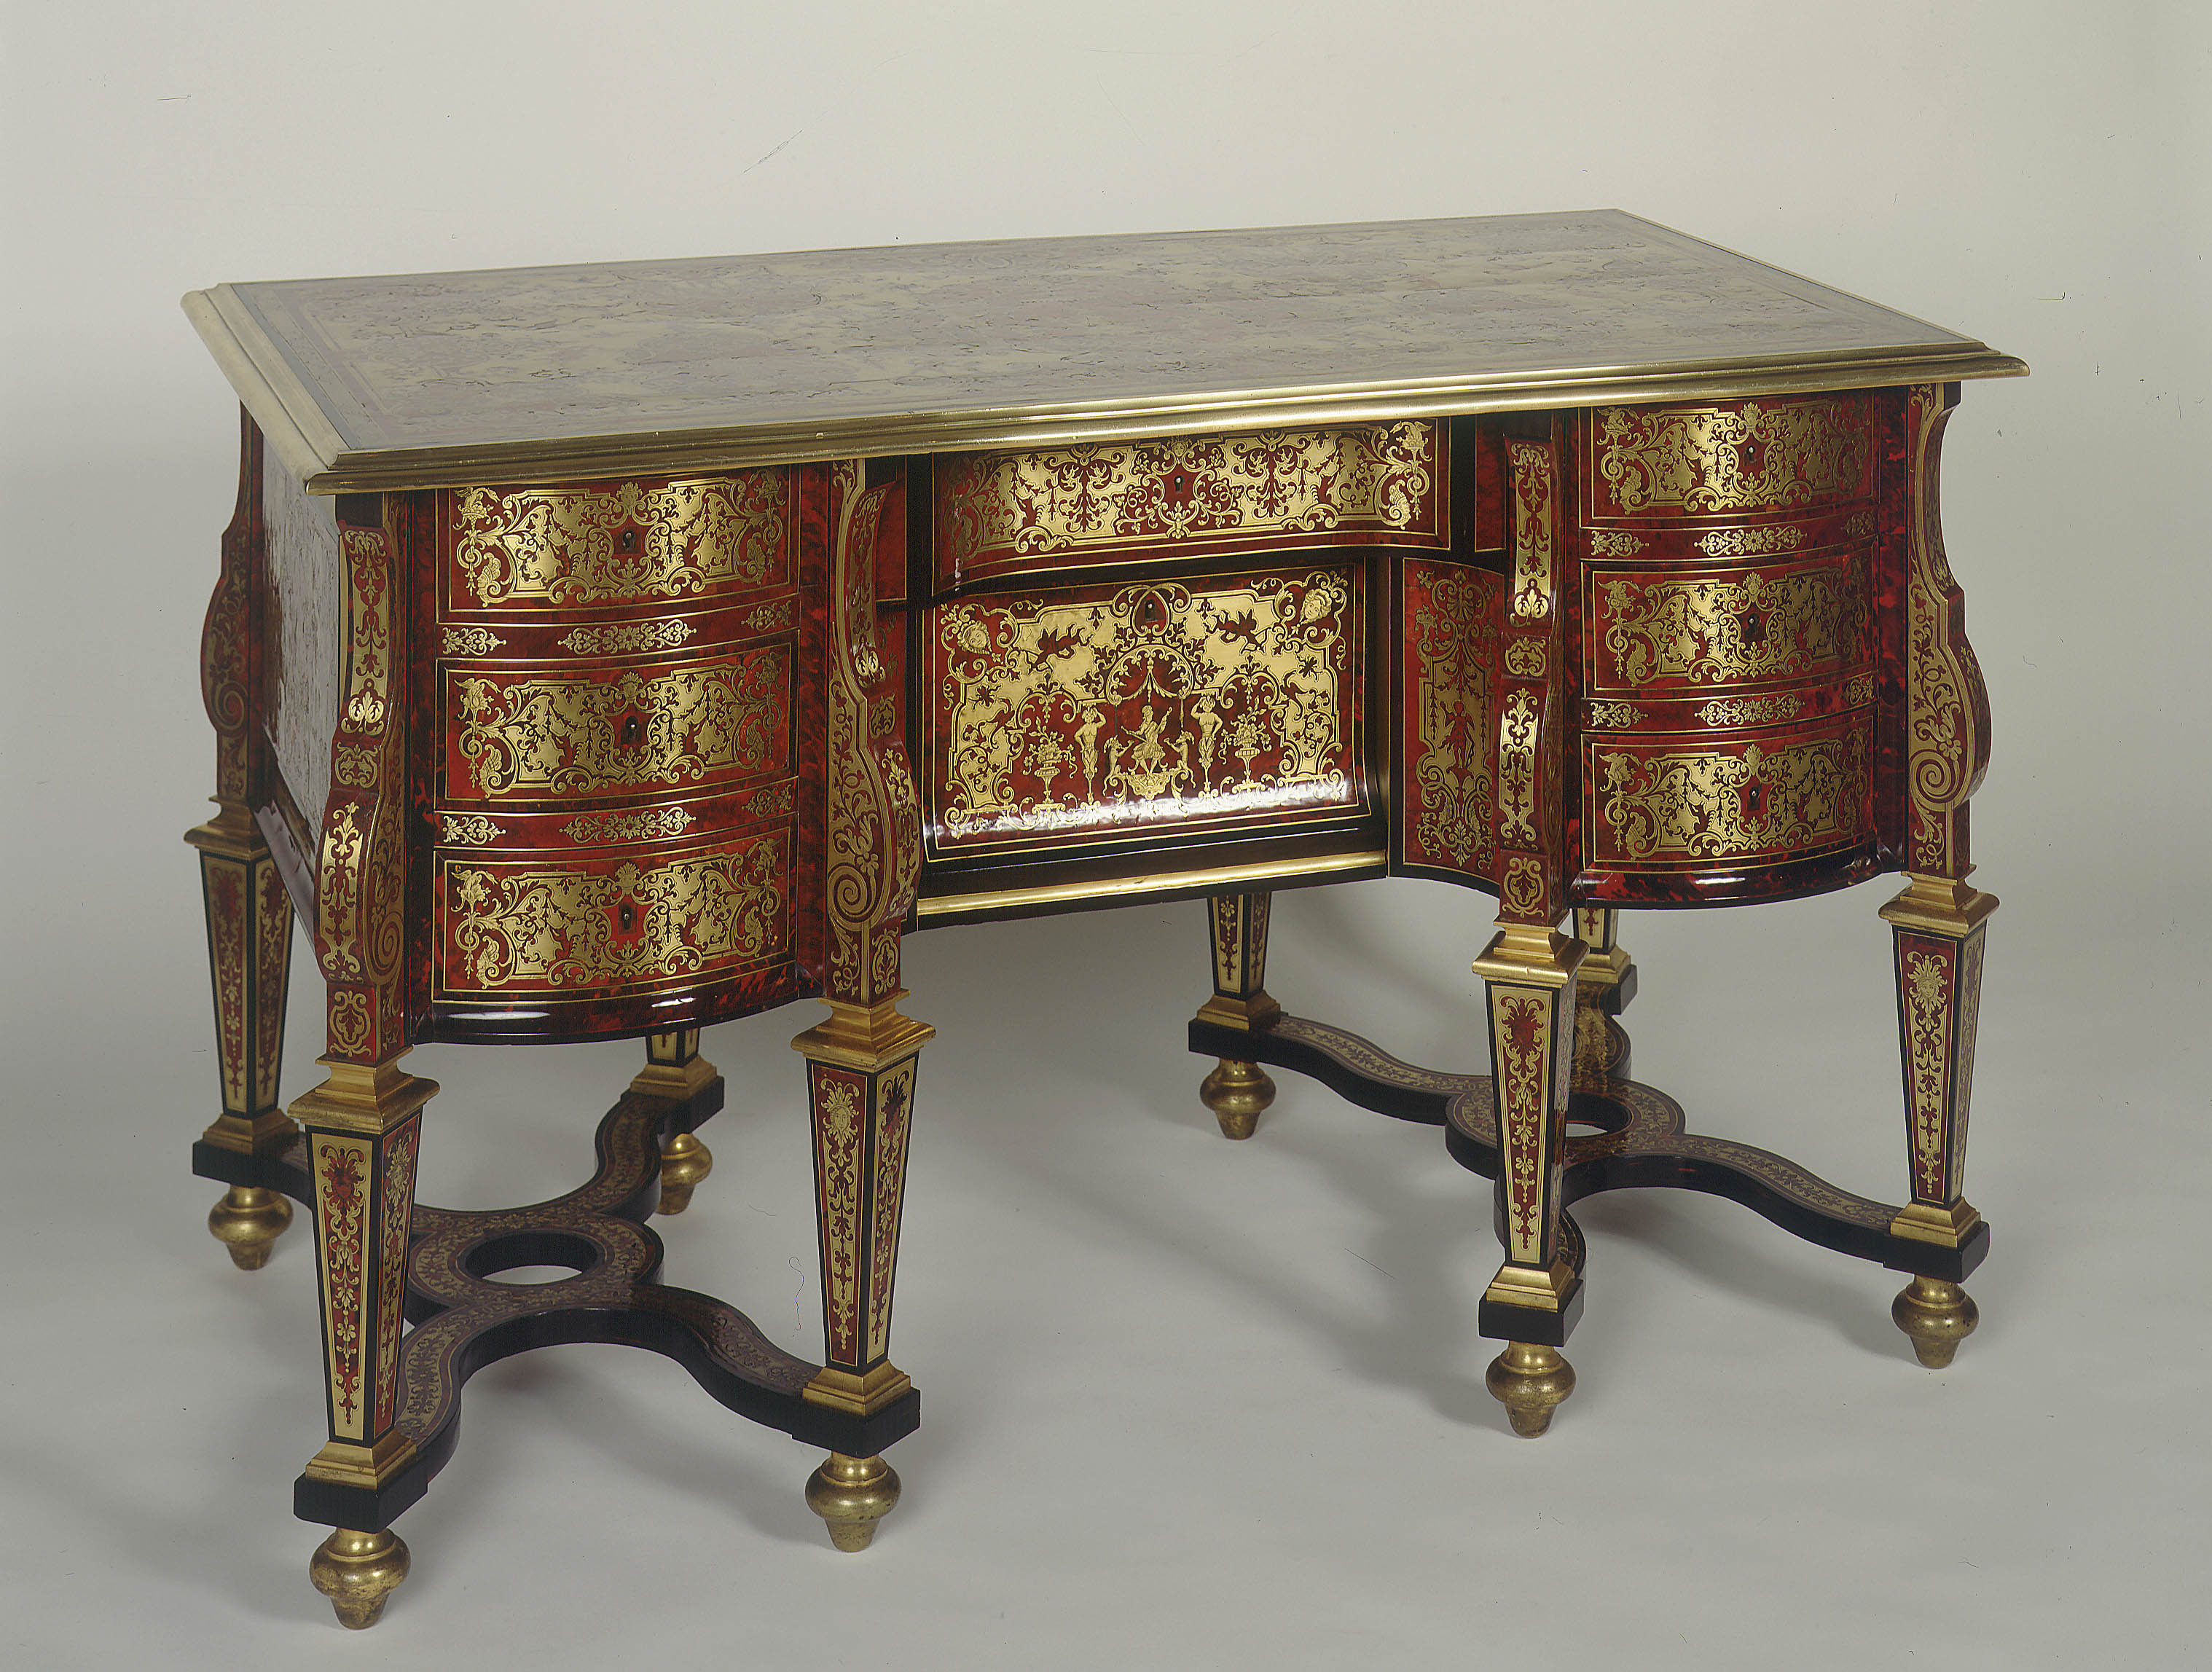 table bureau dit bureau mazarin petit palais. Black Bedroom Furniture Sets. Home Design Ideas